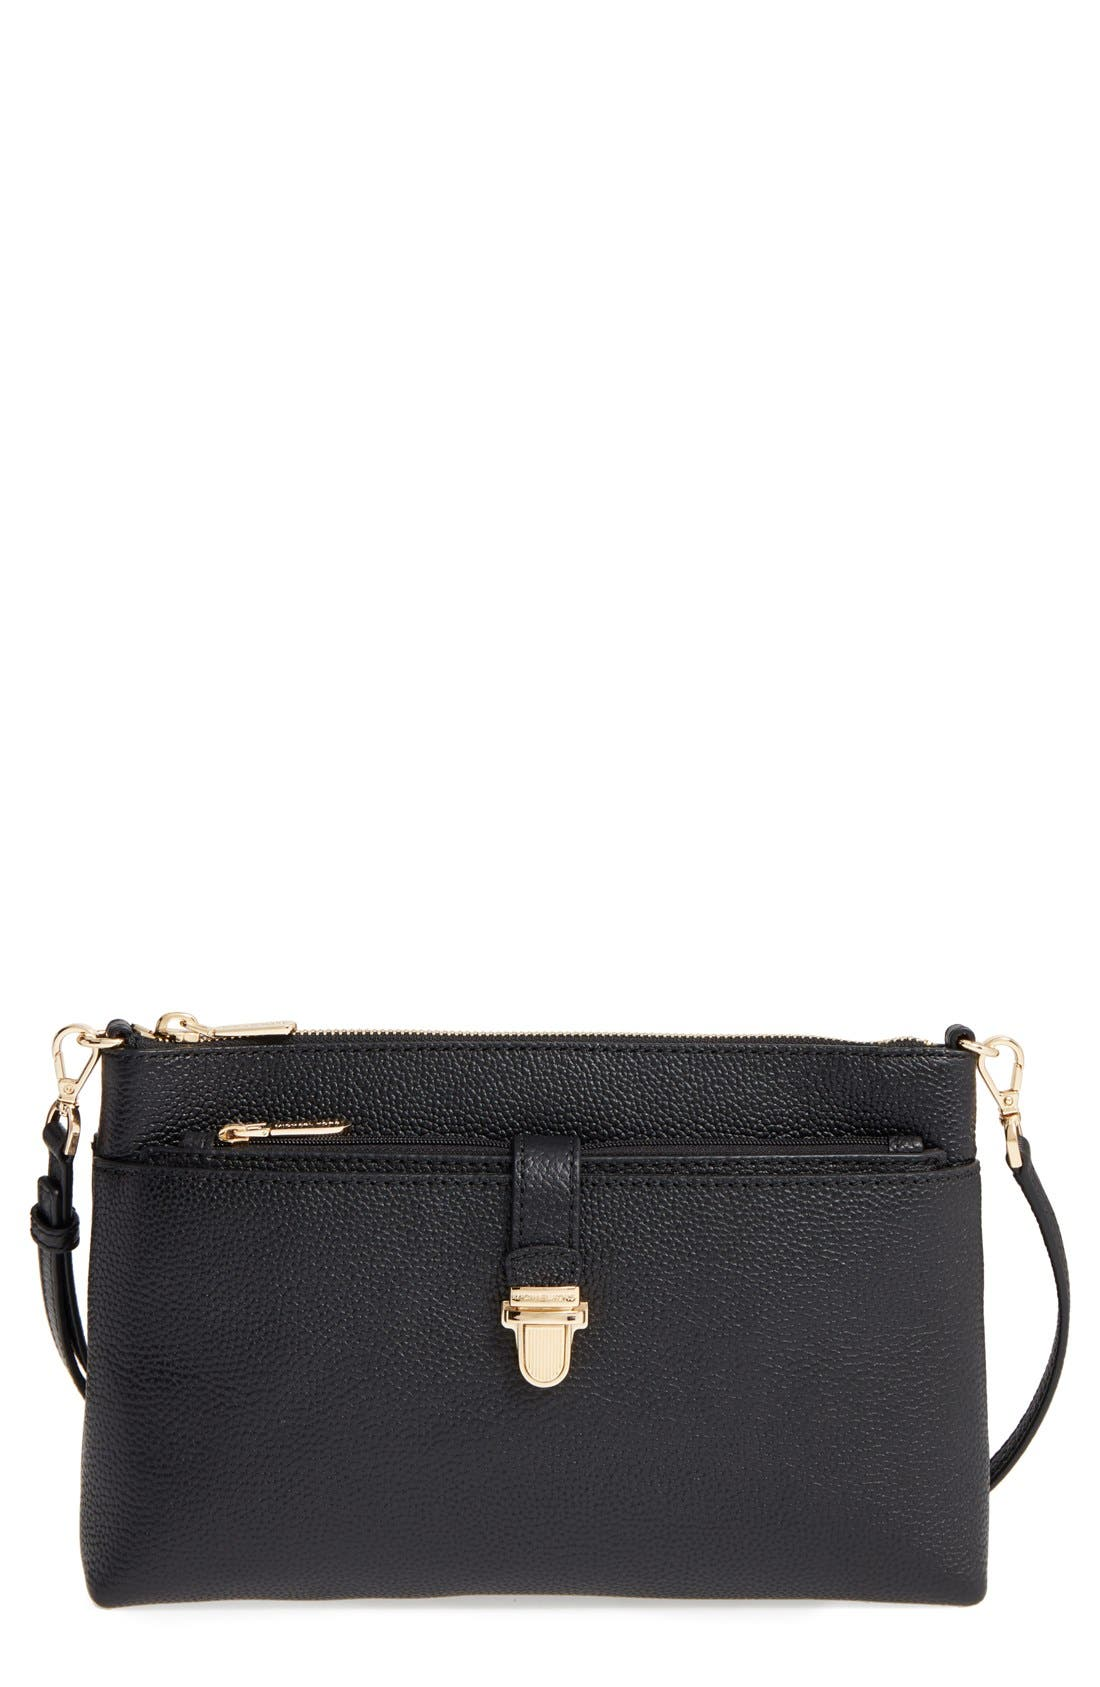 Large Mercer Leather Crossbody Bag,                         Main,                         color, Black/ Gold